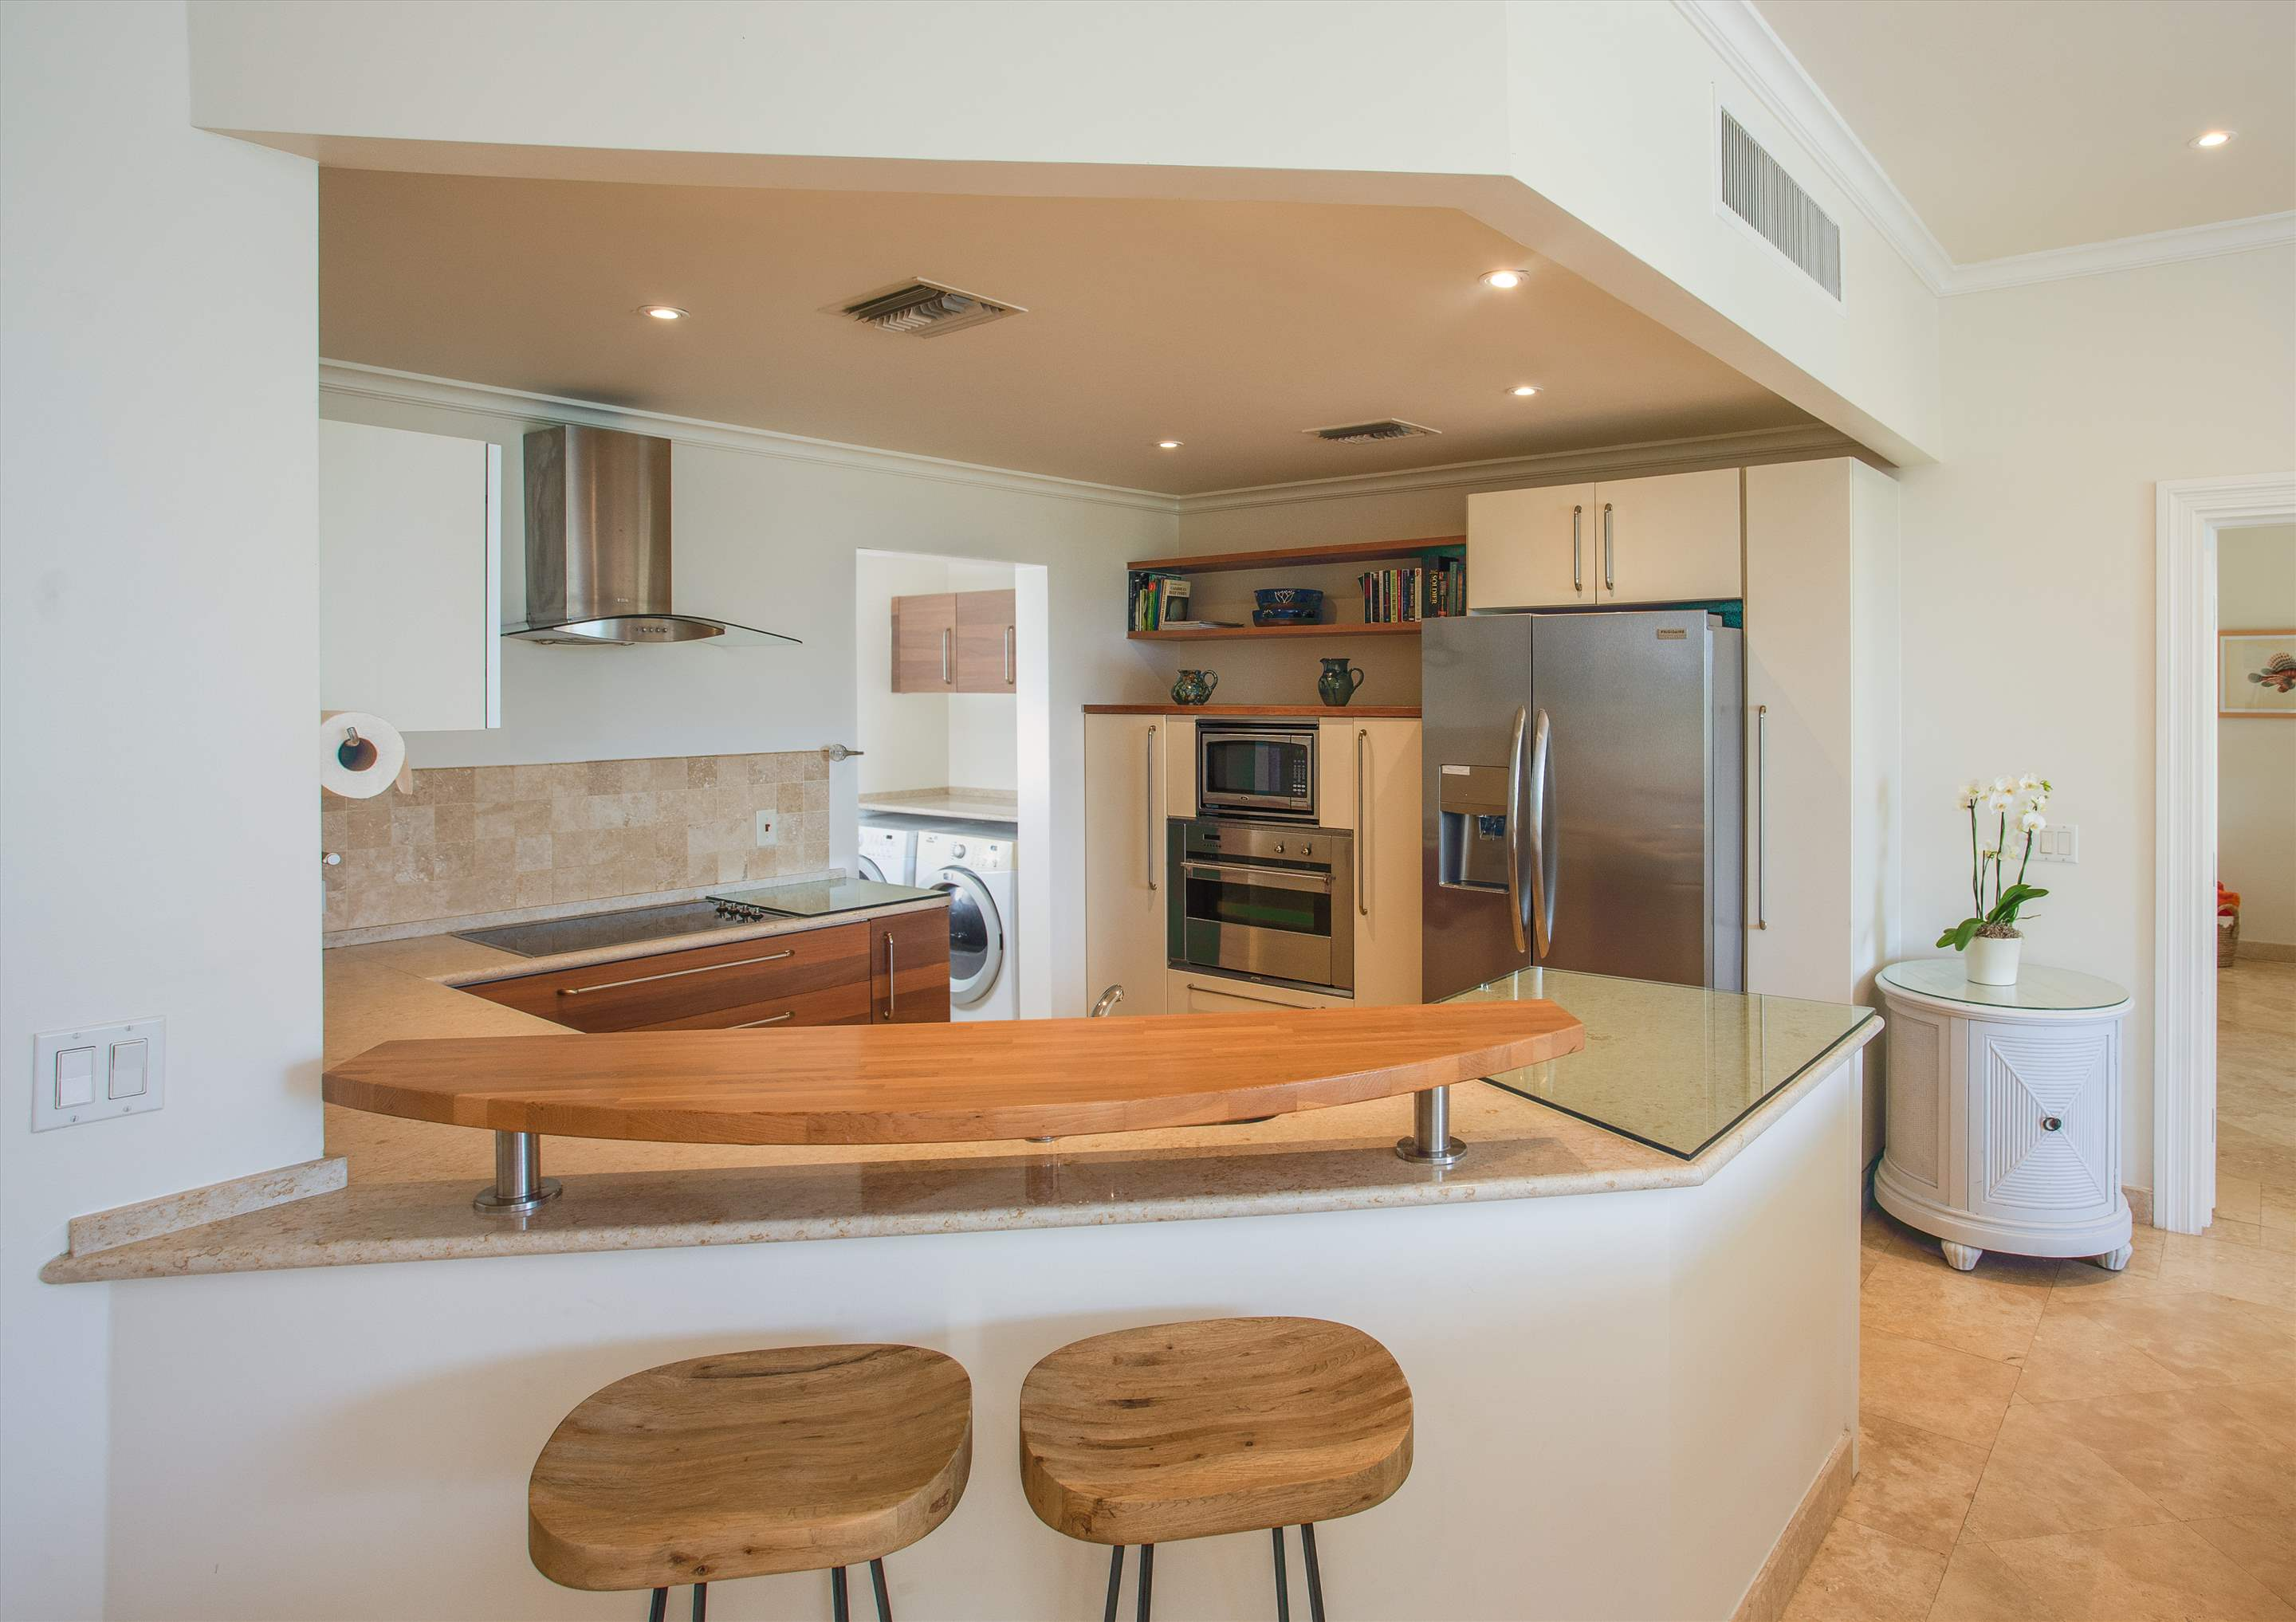 Schooner Bay 205, Two Bedroom rate, 2 bedroom apartment in St. James & West Coast, Barbados Photo #4